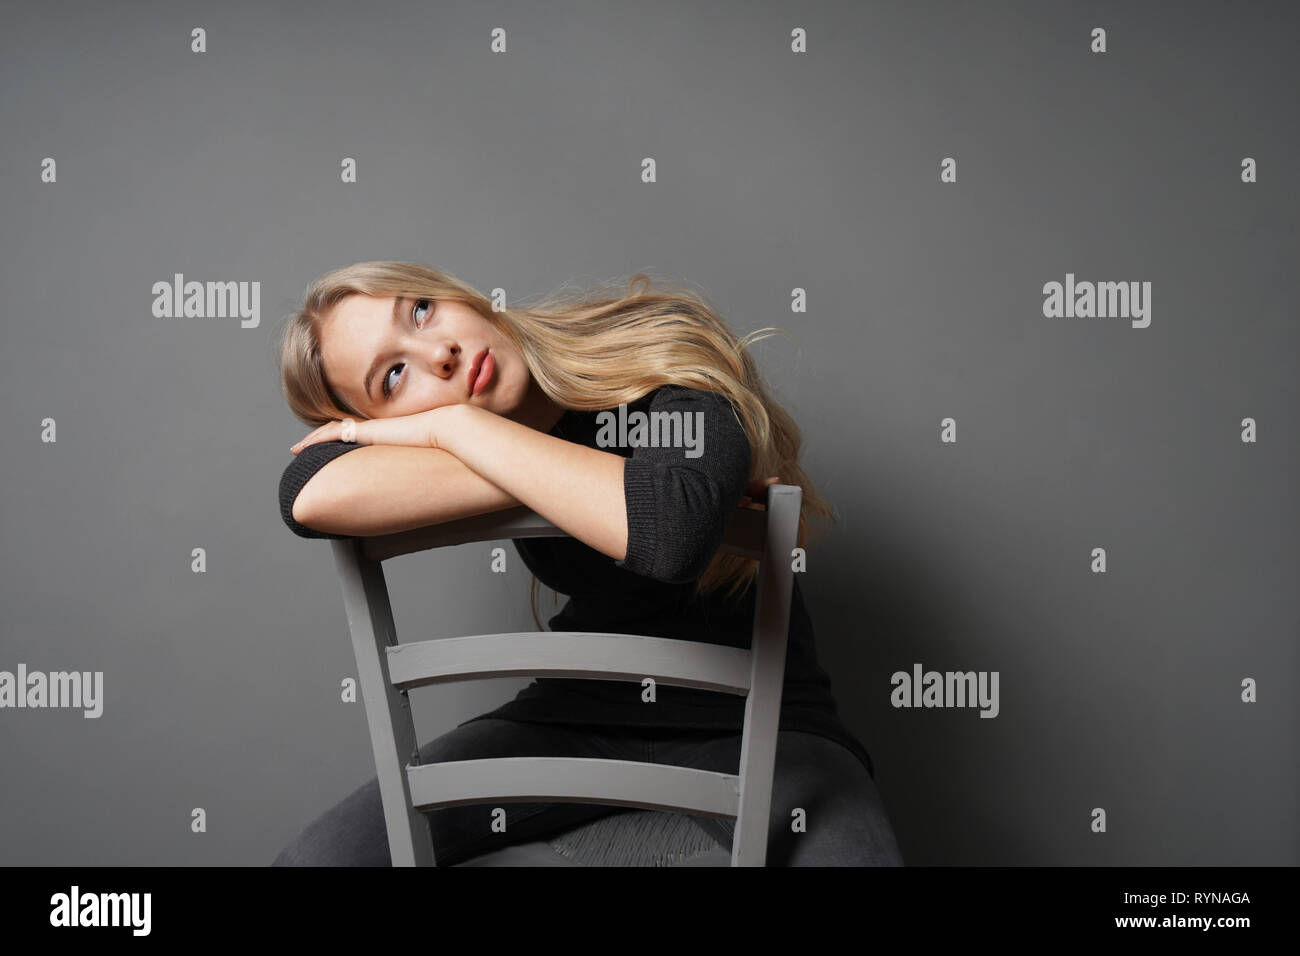 bored female sitting astride on chair and staring at ceiling - gray background with copy space - Stock Image